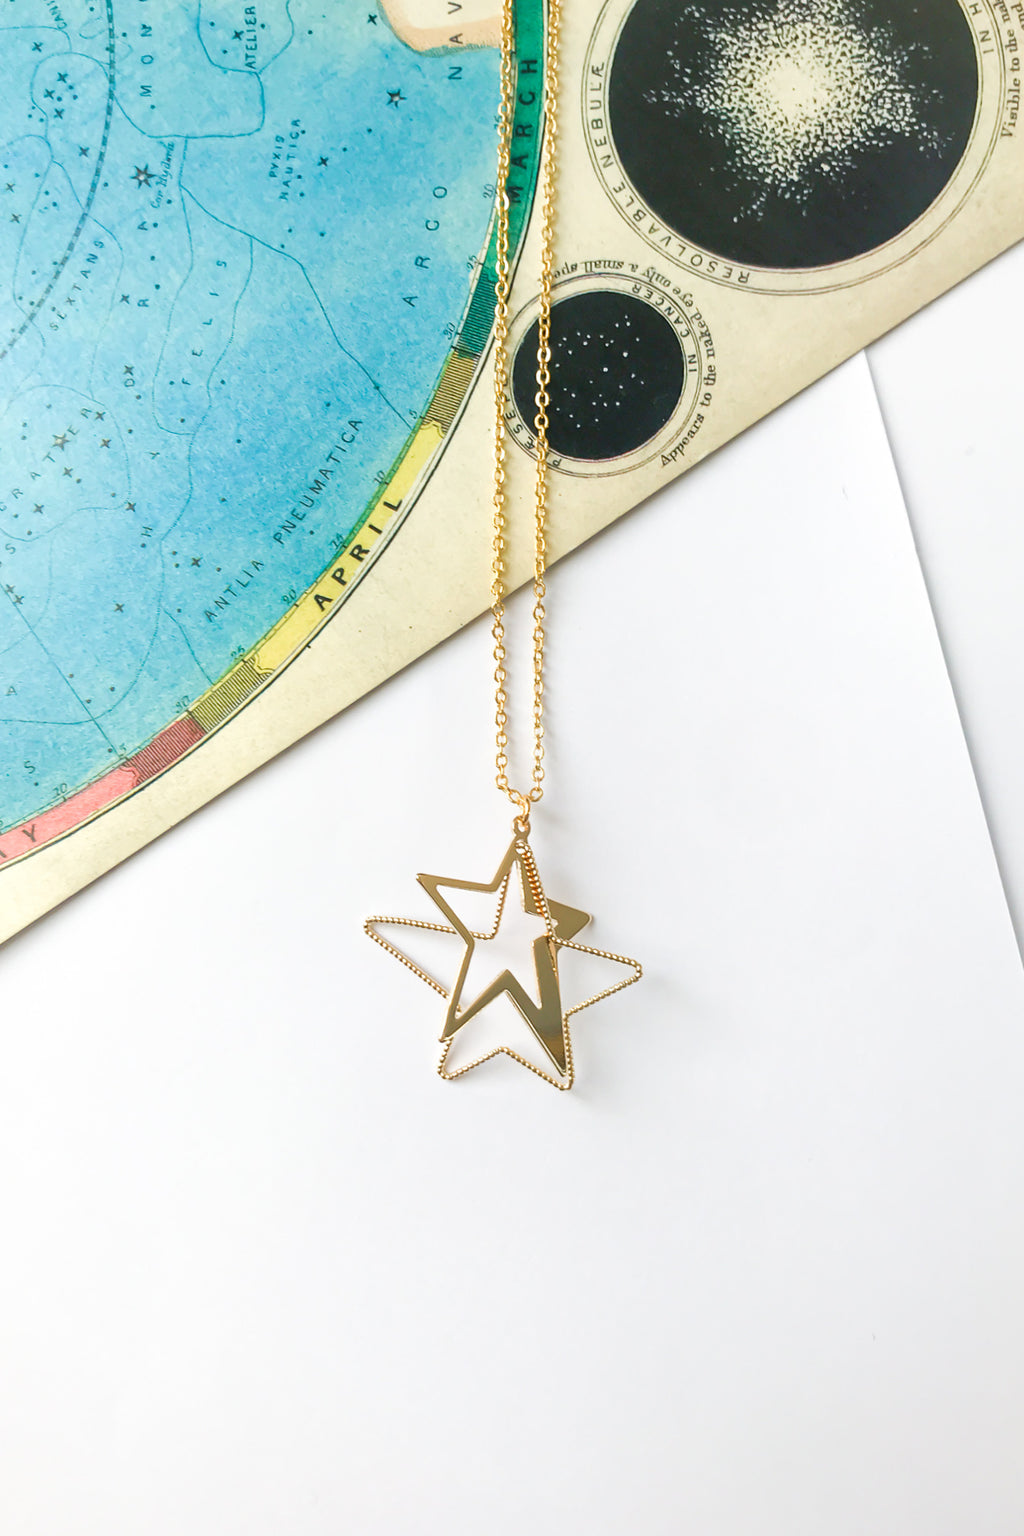 3D star necklace